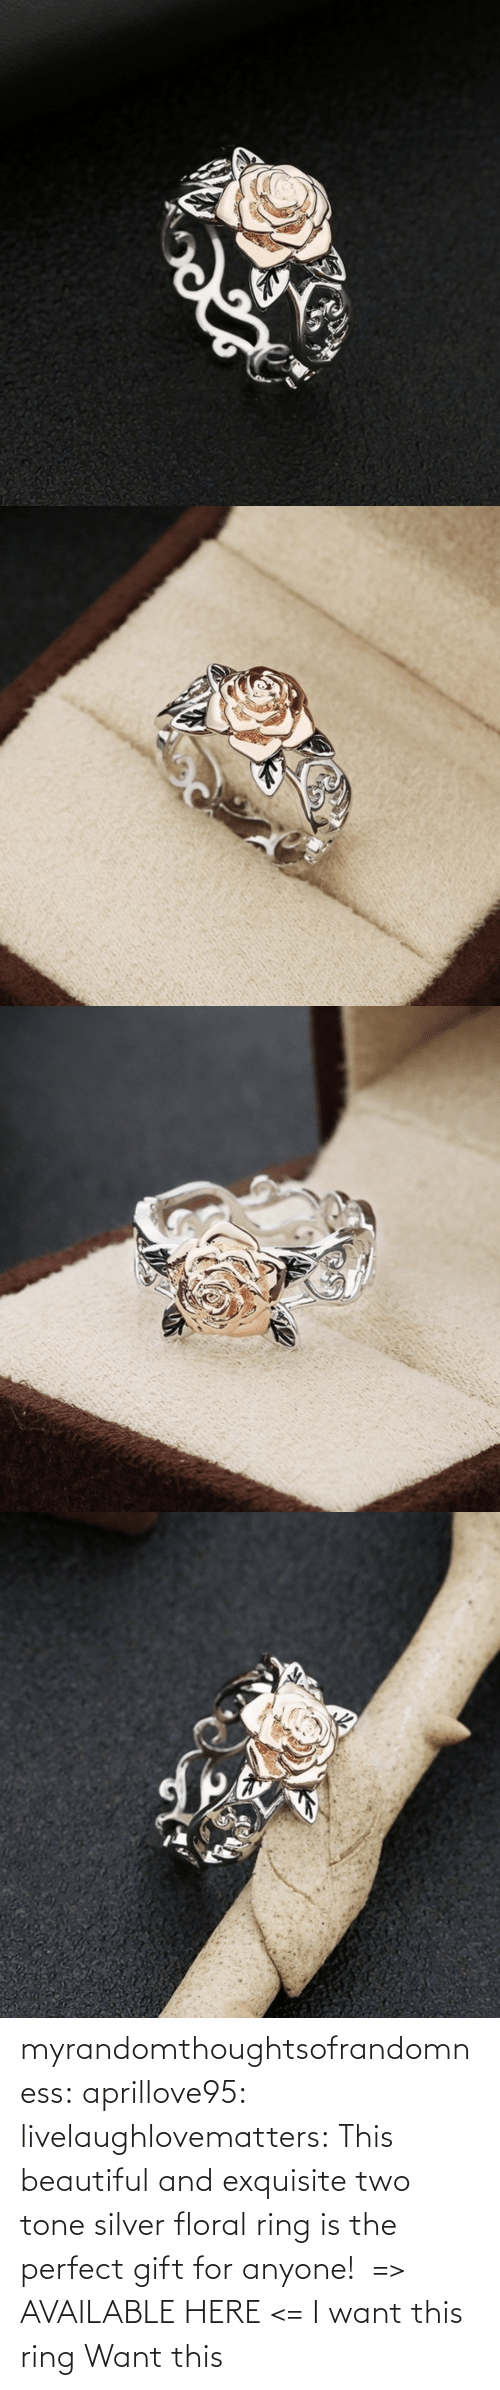 gift: myrandomthoughtsofrandomness:  aprillove95: livelaughlovematters:  This beautiful and exquisite two tone silver floral ring is the perfect gift for anyone! => AVAILABLE HERE <=    I want this ring     Want this